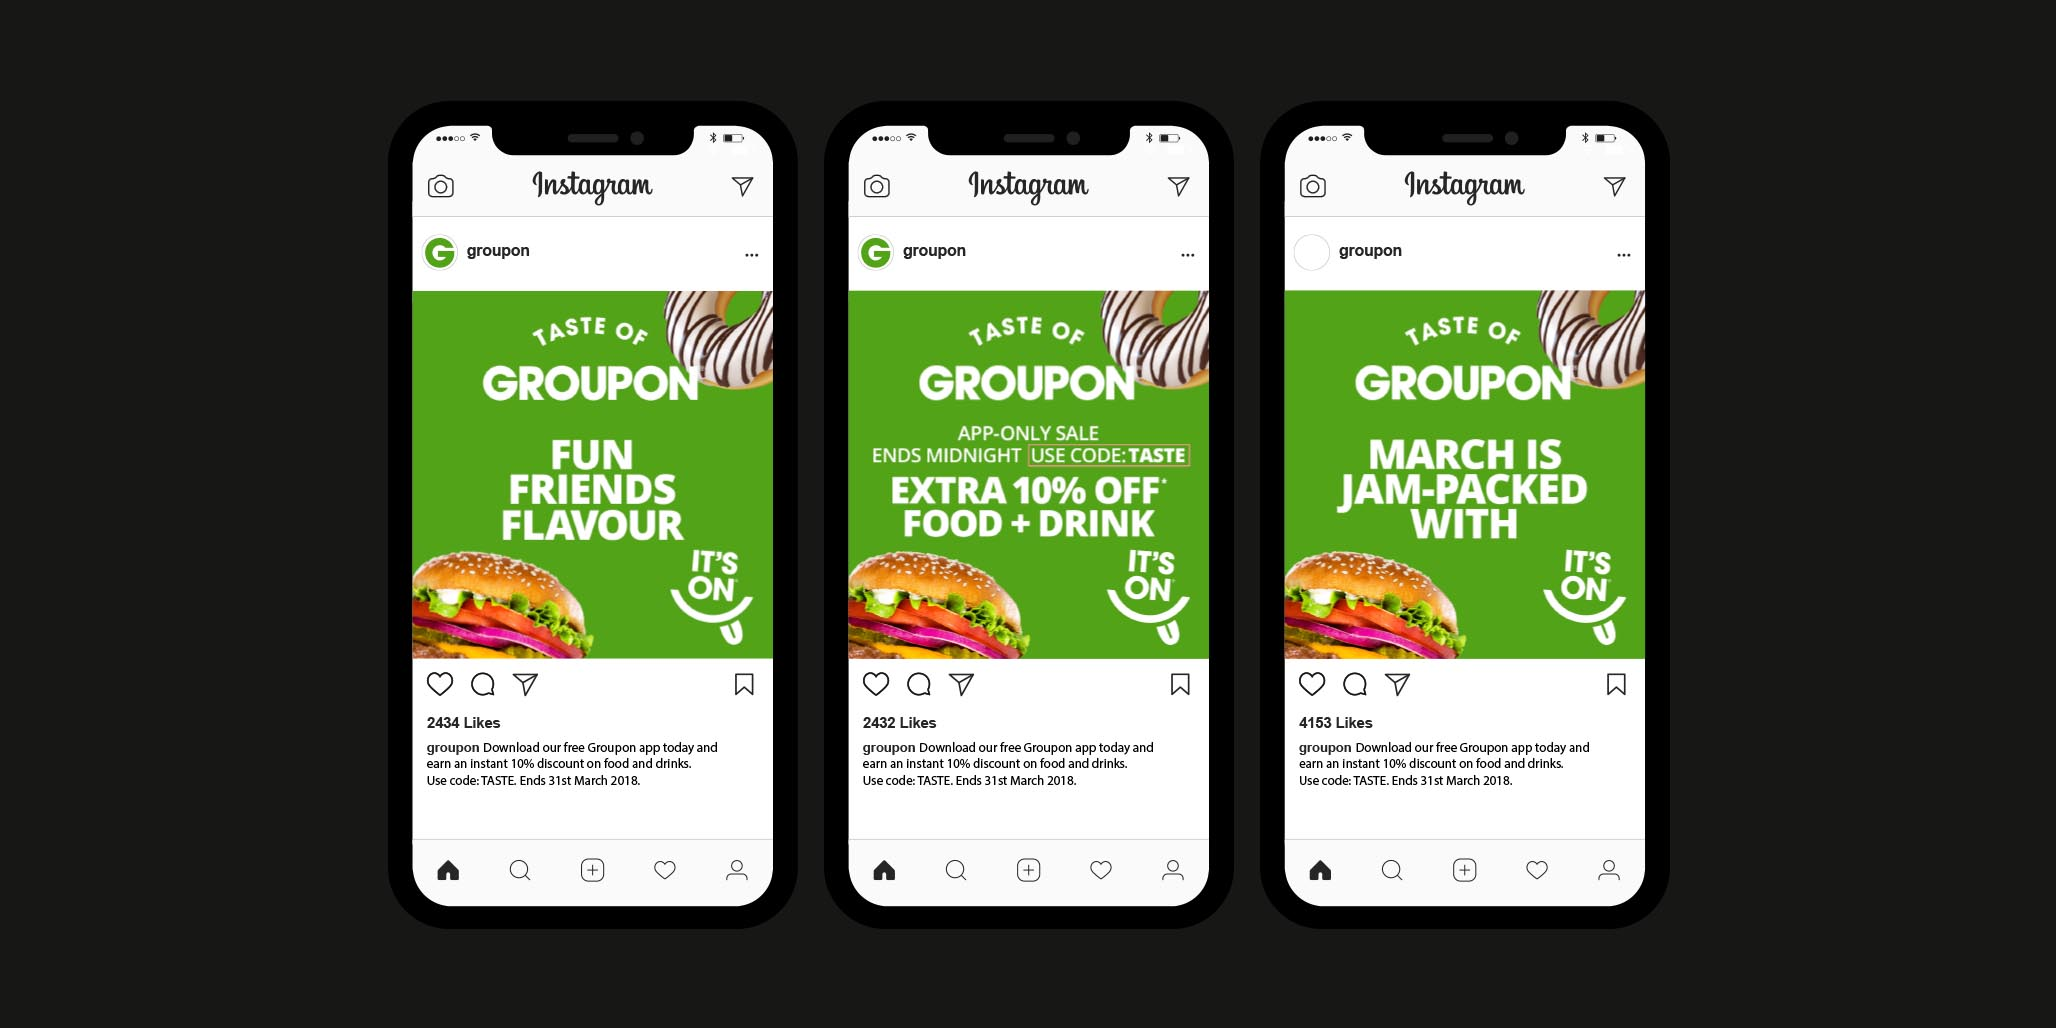 Digital Campaign, Creative Copywriting, Web Banners & Ad Design project in Sydney Australia for global online business brand Groupon, image D